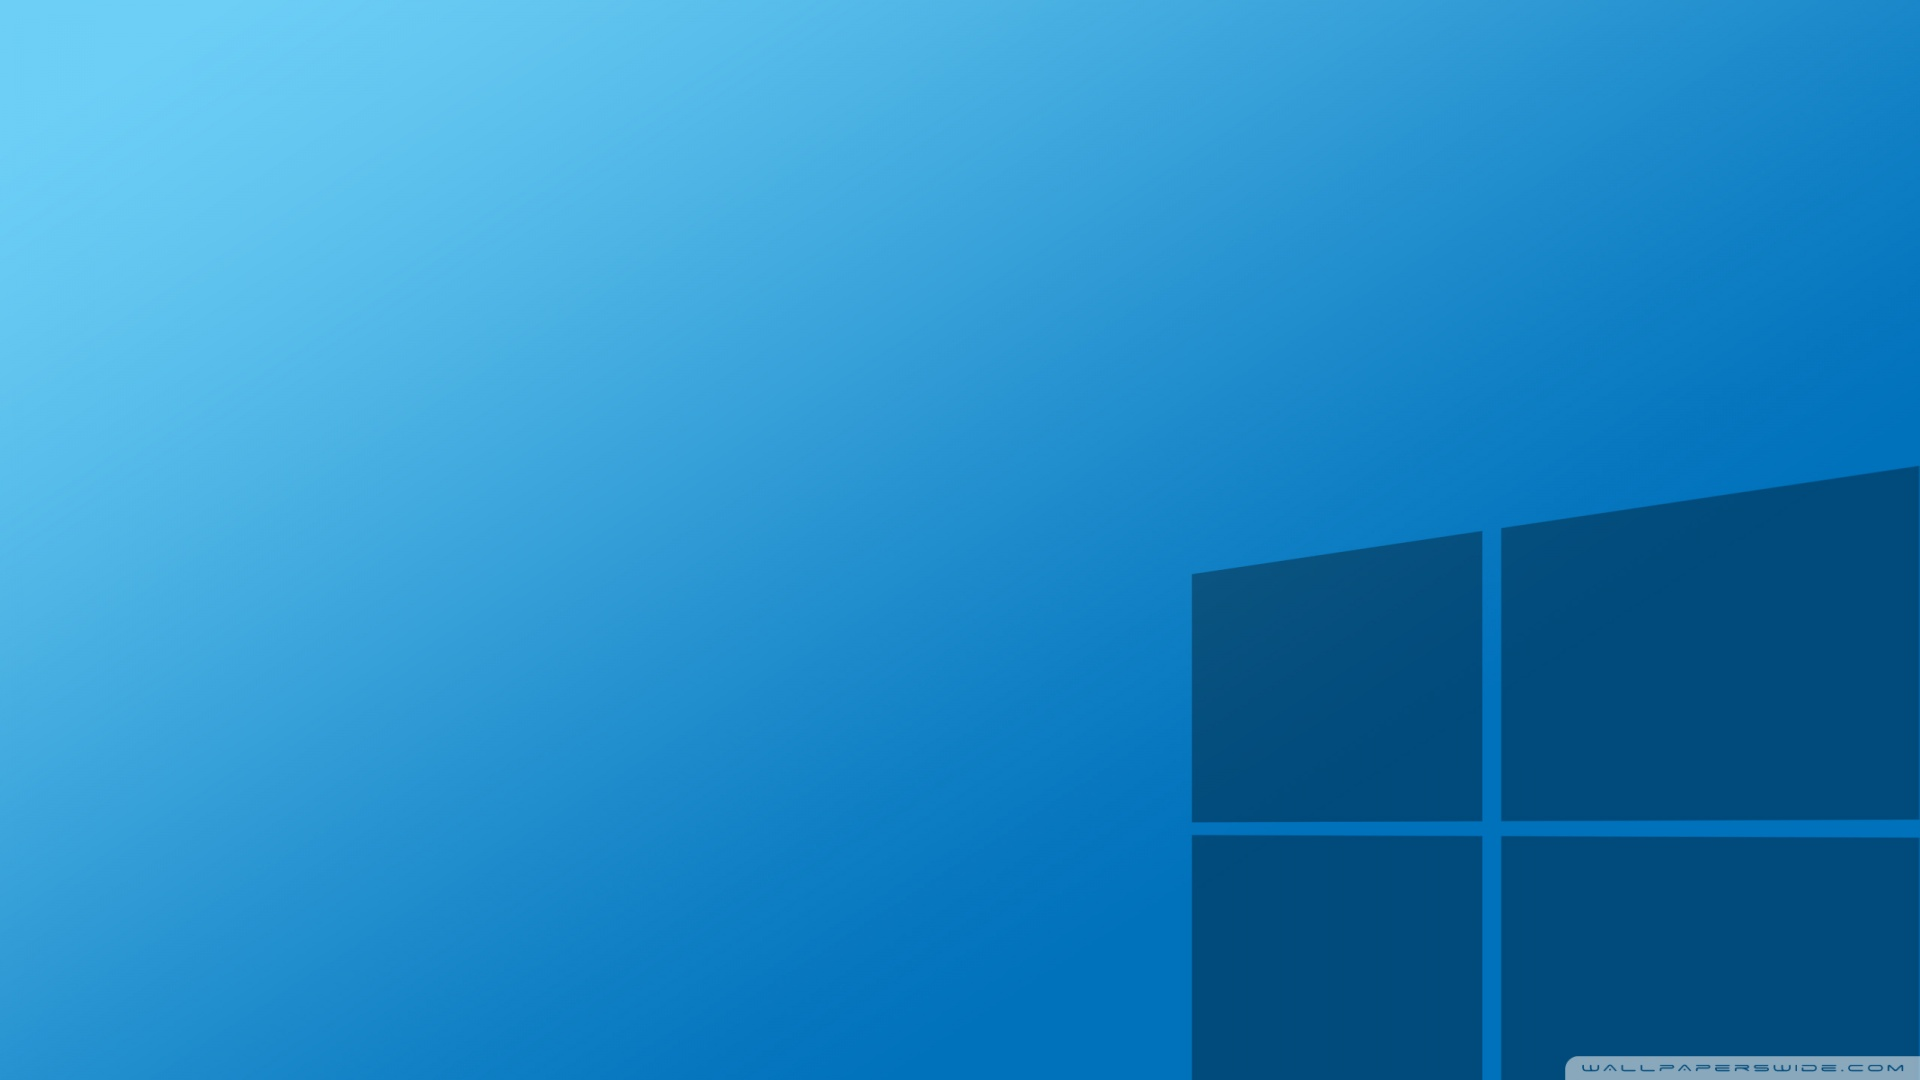 windows desktop pc background these are the best windows 10 wallpapers 1920x1080